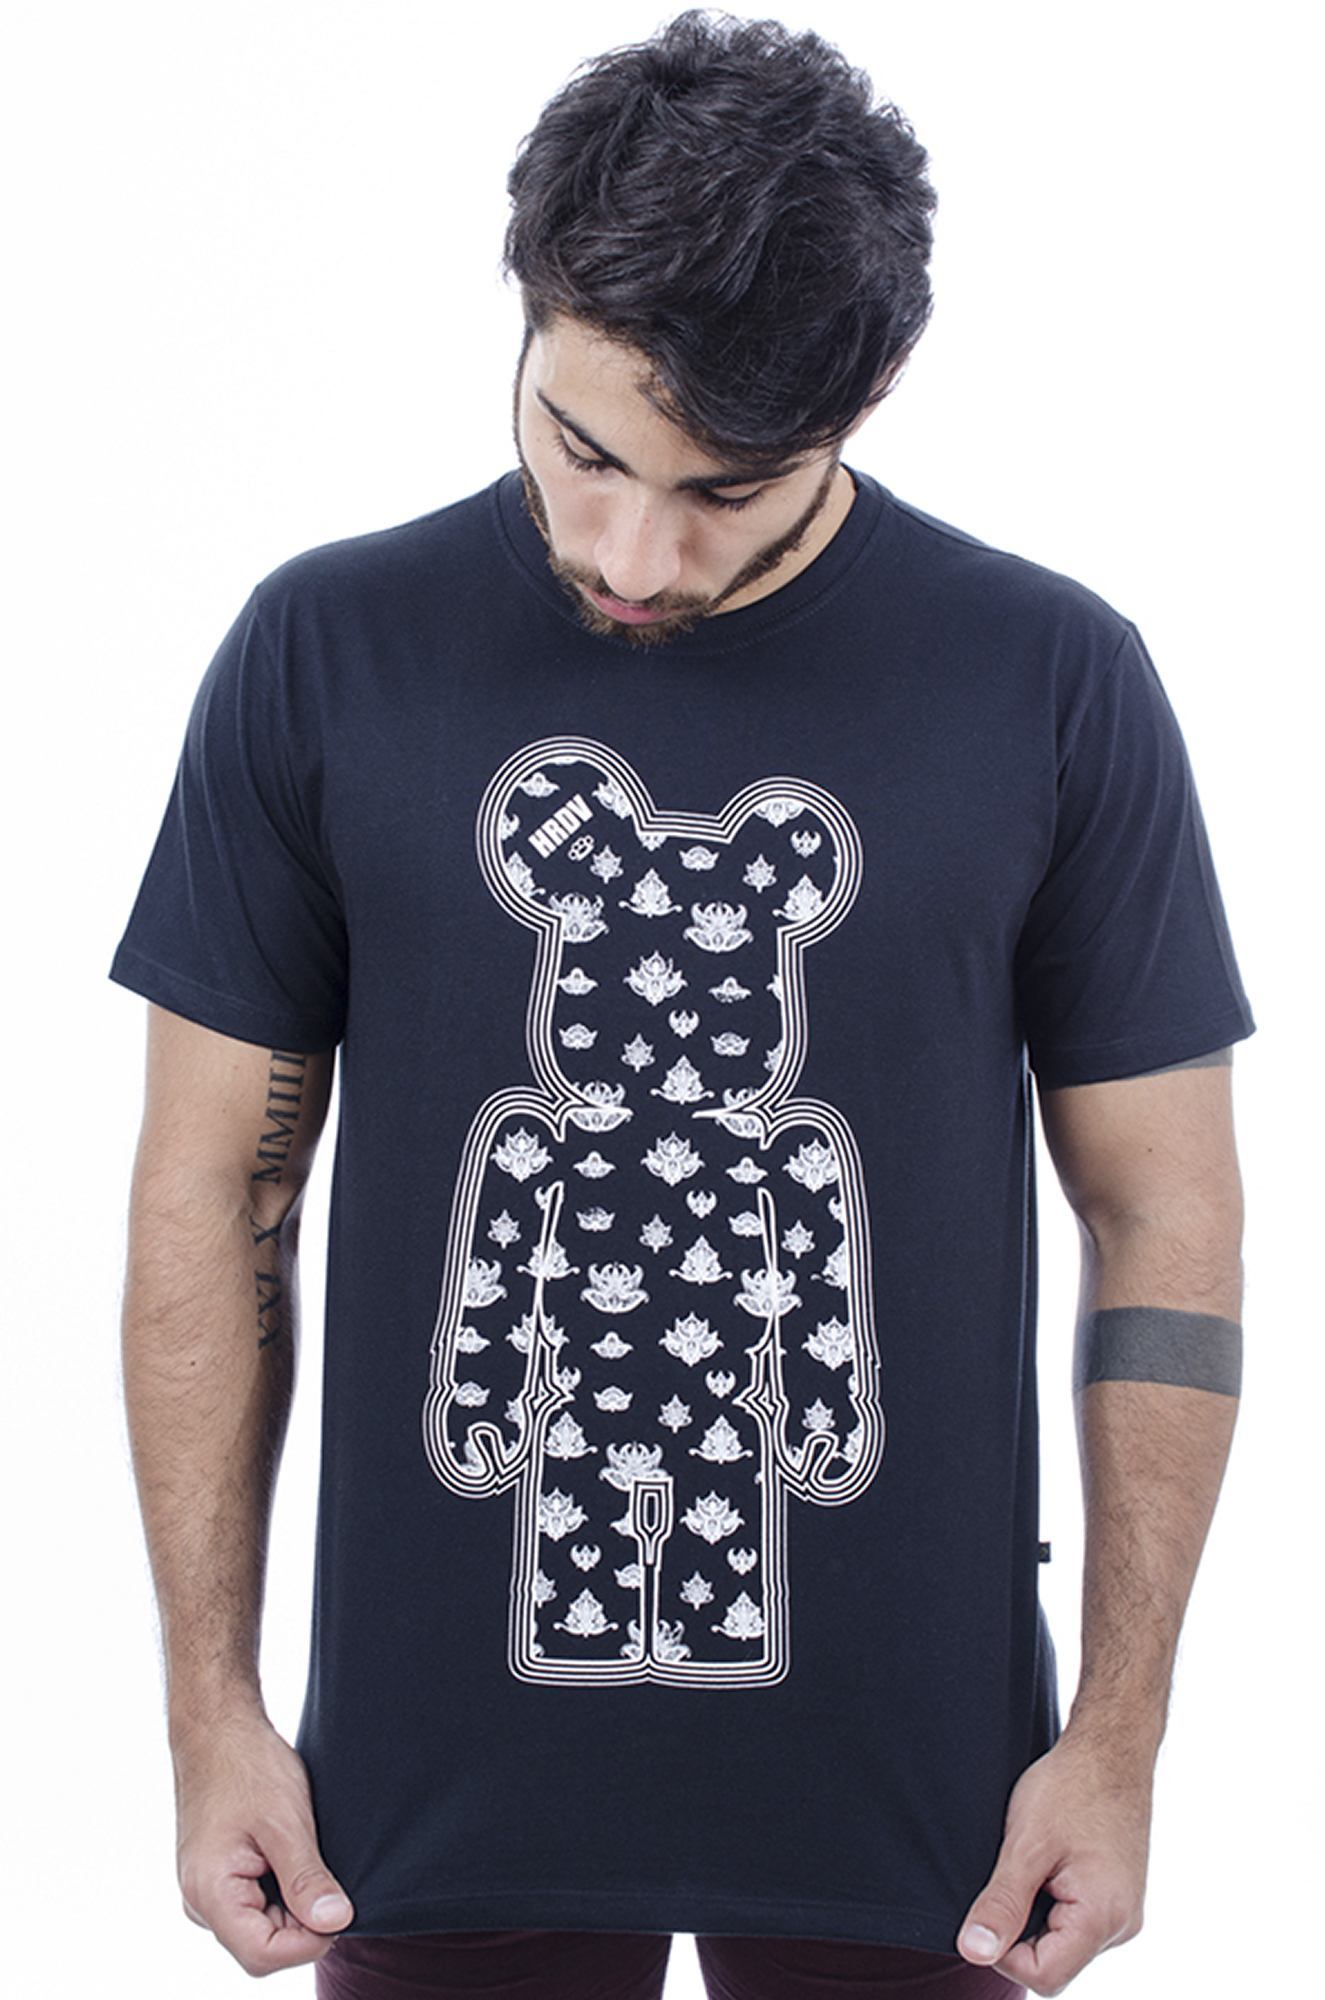 Camiseta Masculina Estampada Indian Toy Art Preto Hardivision